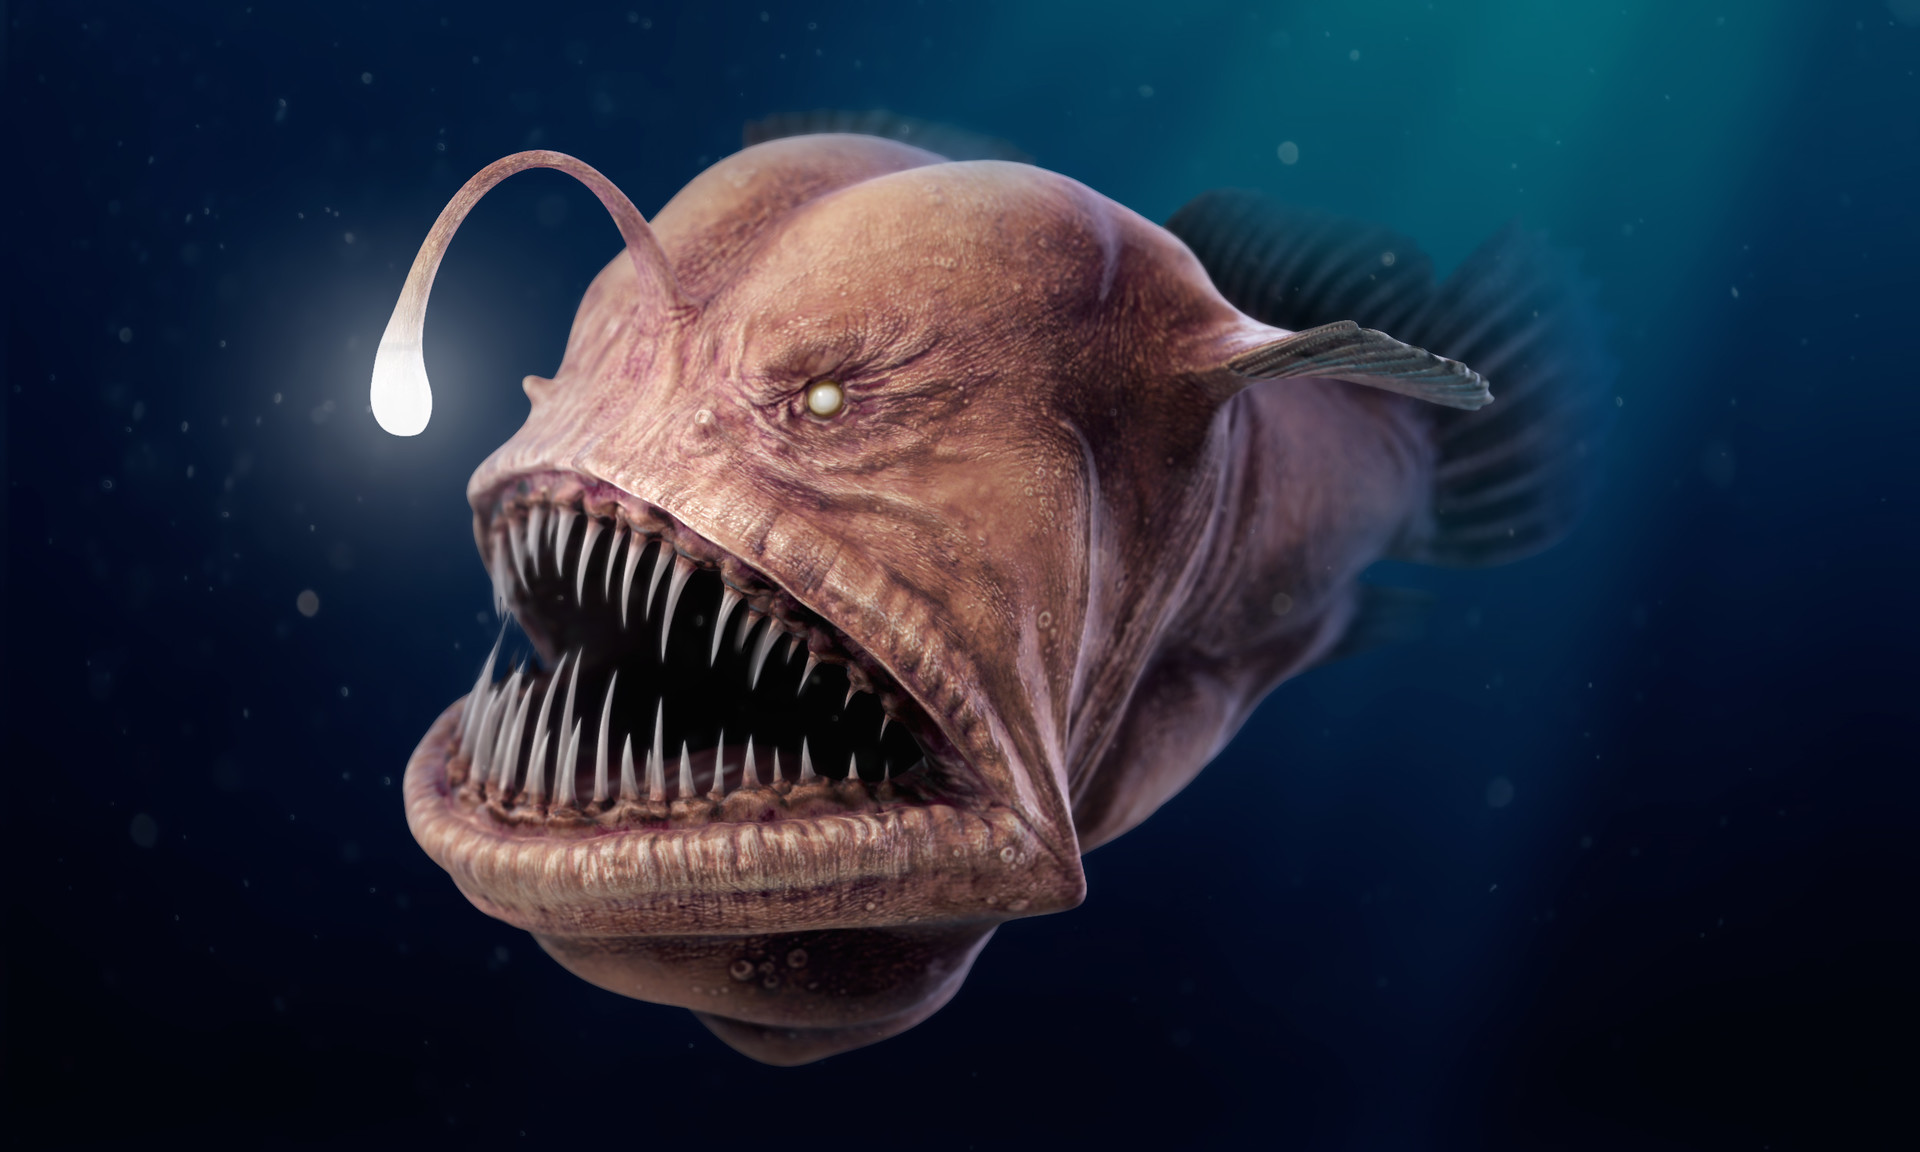 Thomas veyrat anglerfish view01 3 4